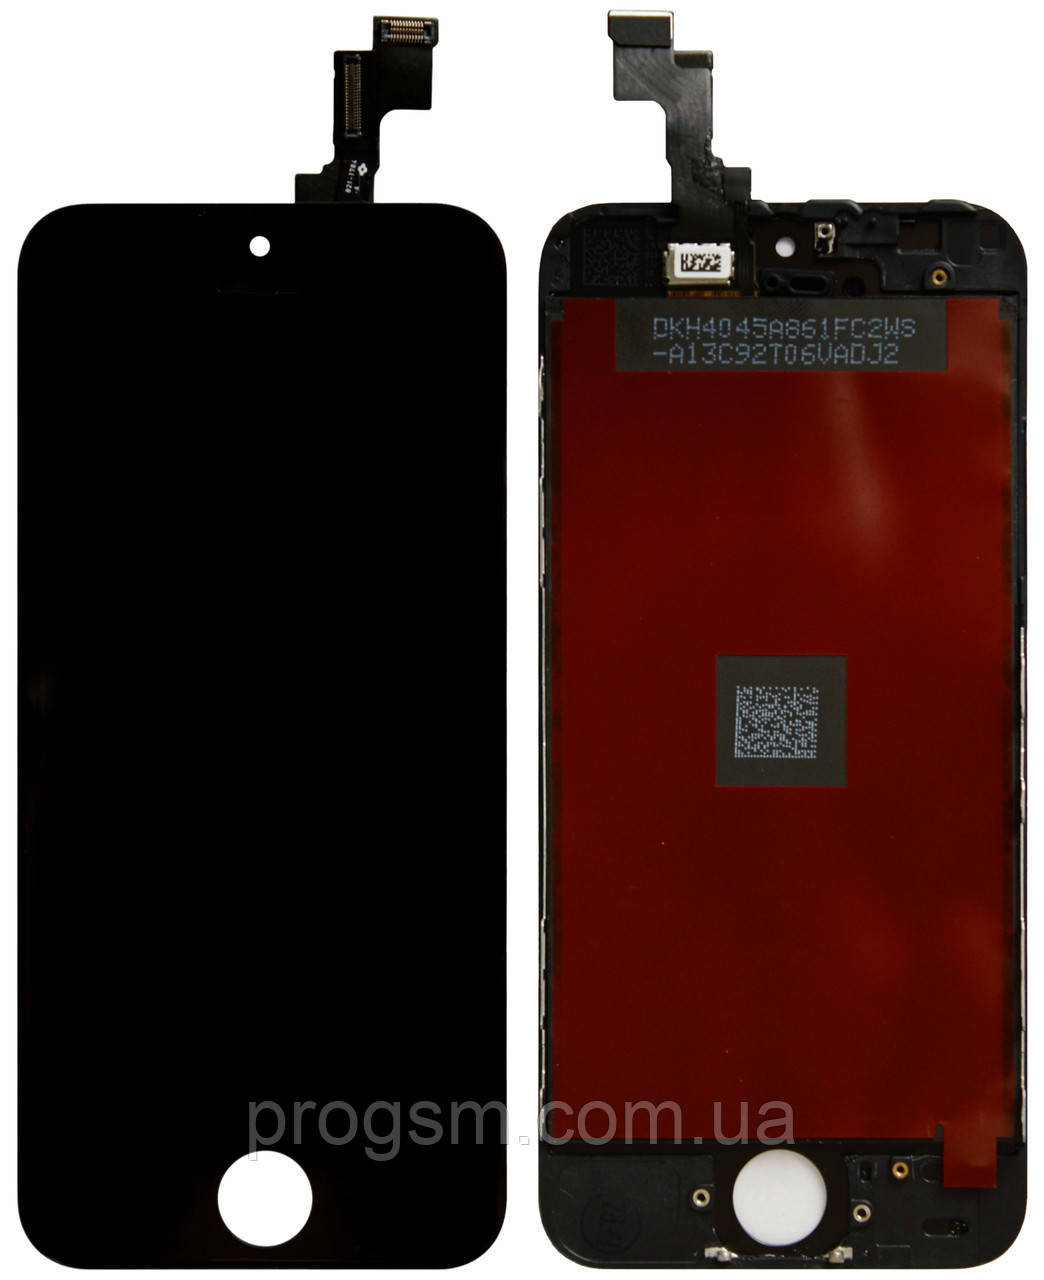 Дисплей iPhone 5S Black complete Original 100%